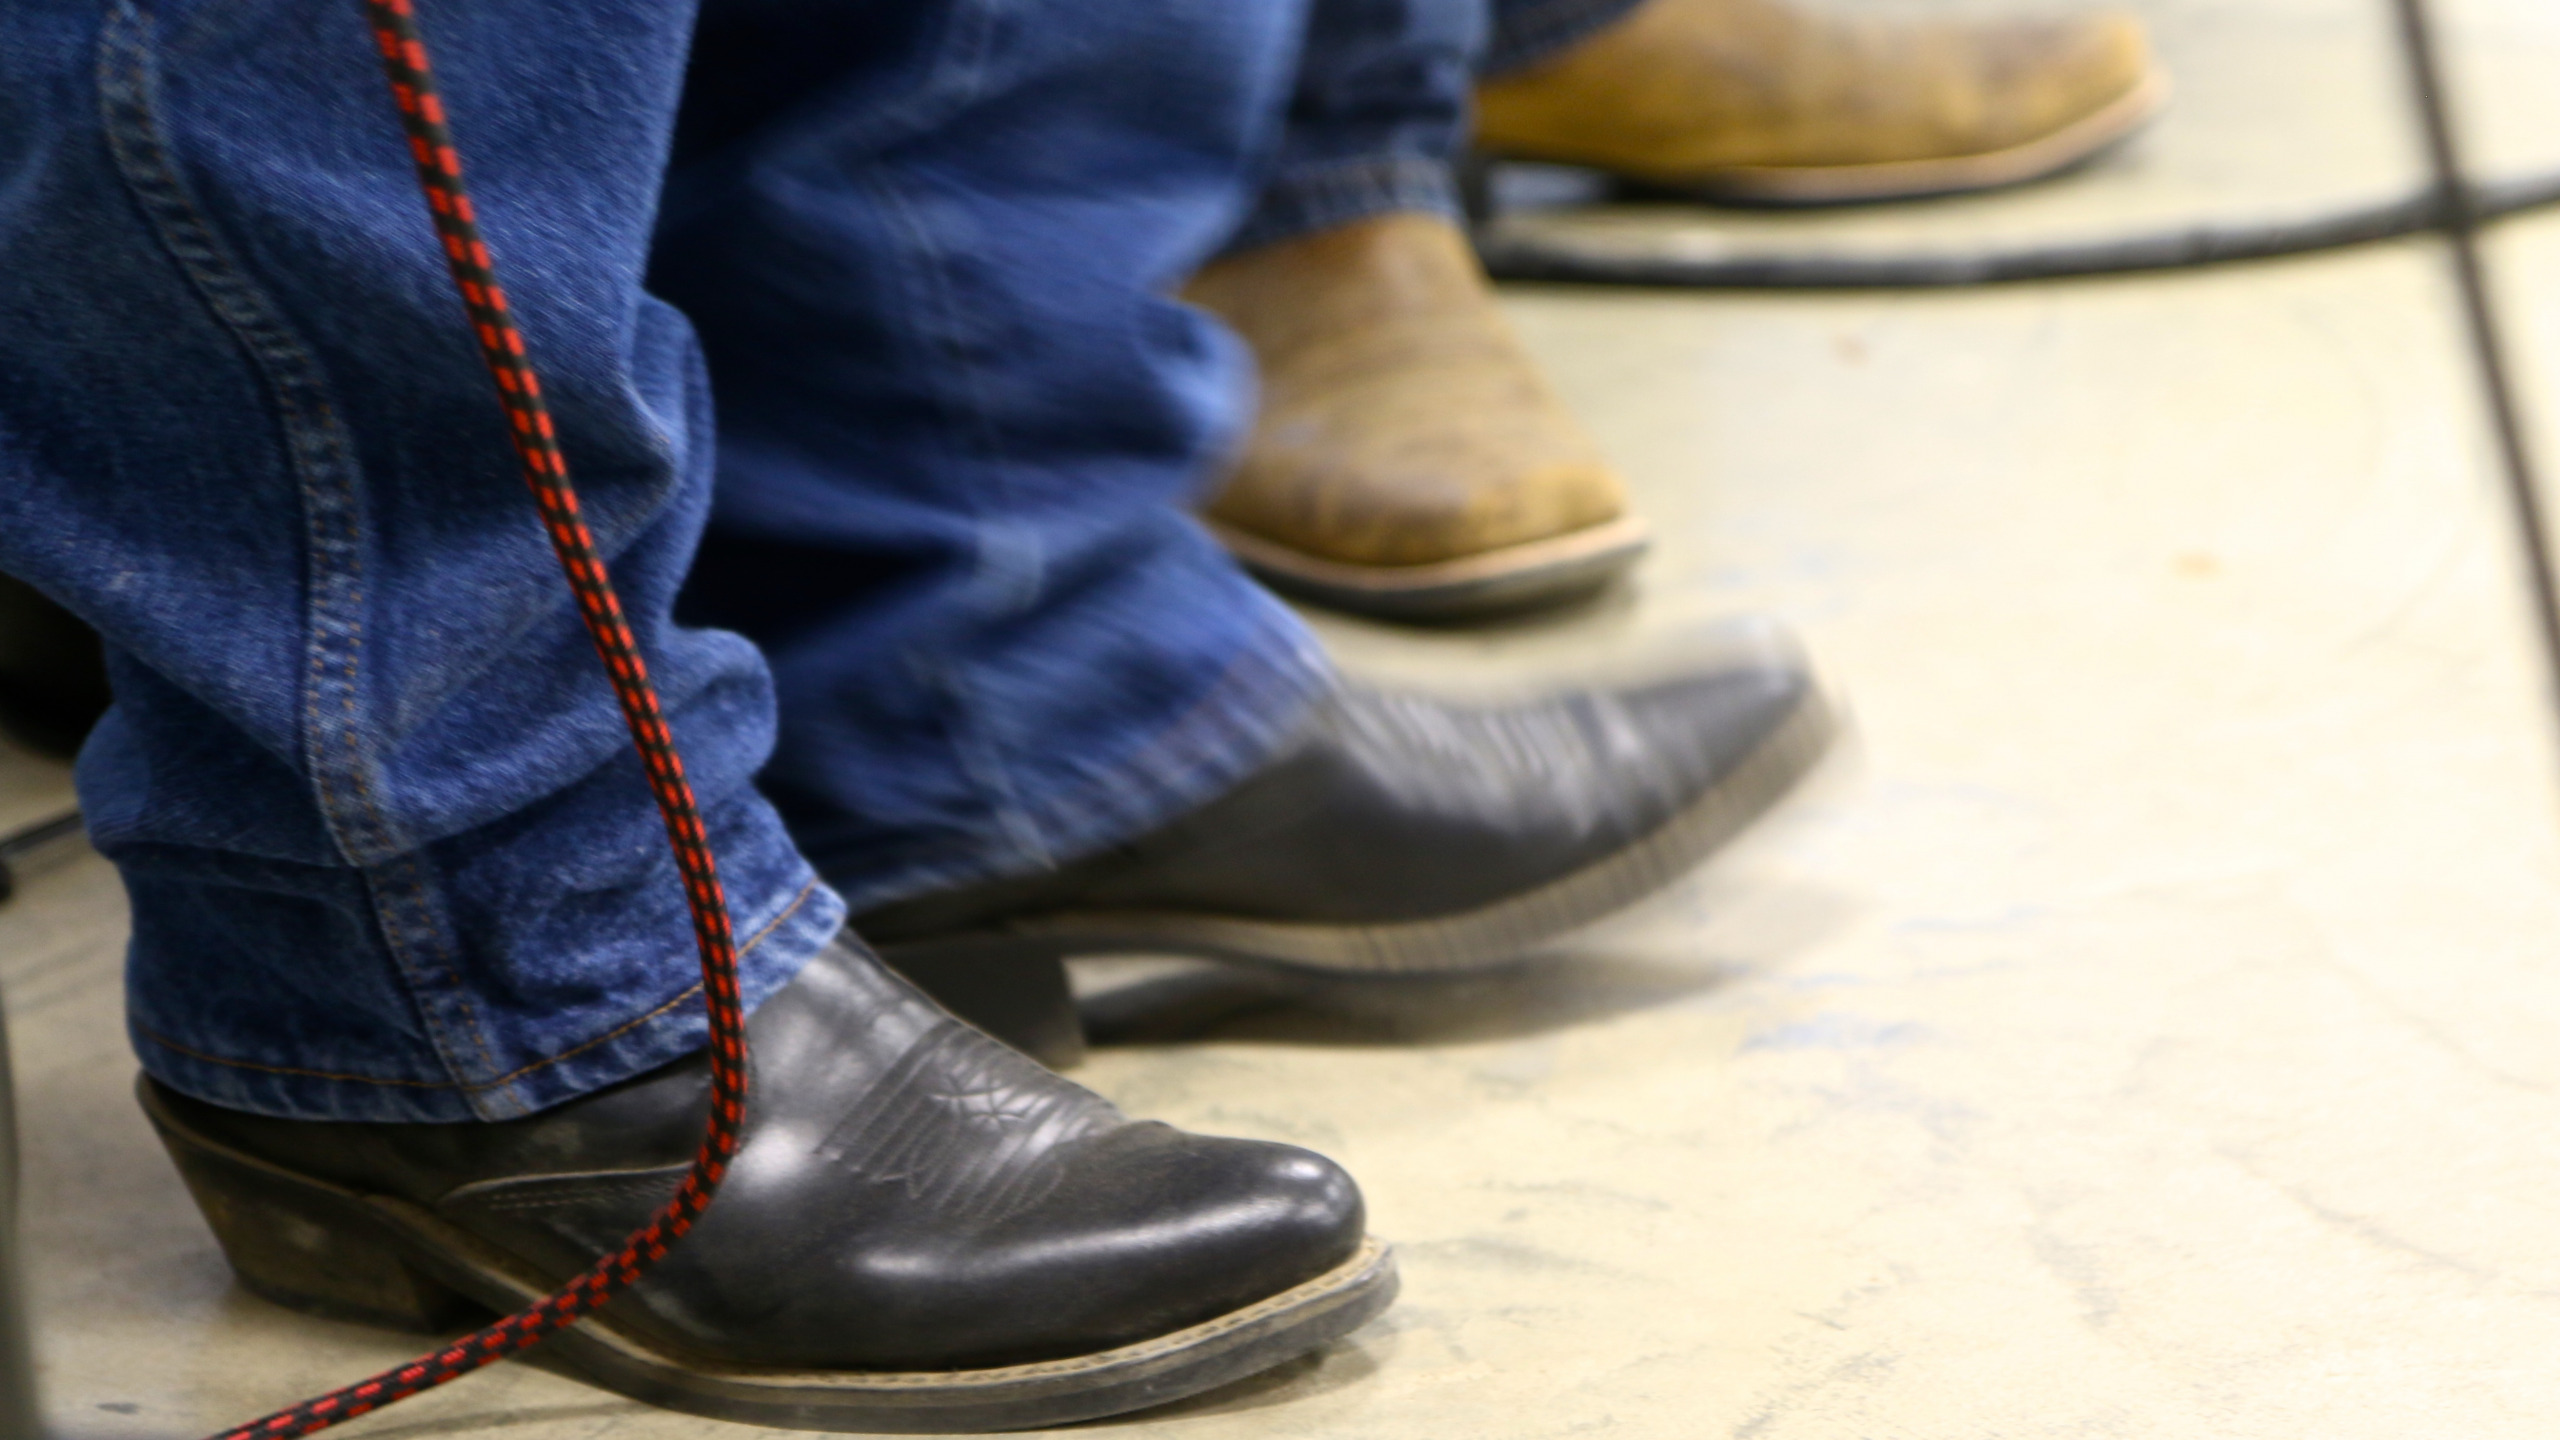 SADDLE UP FOR COWBOY CAMP MEETING